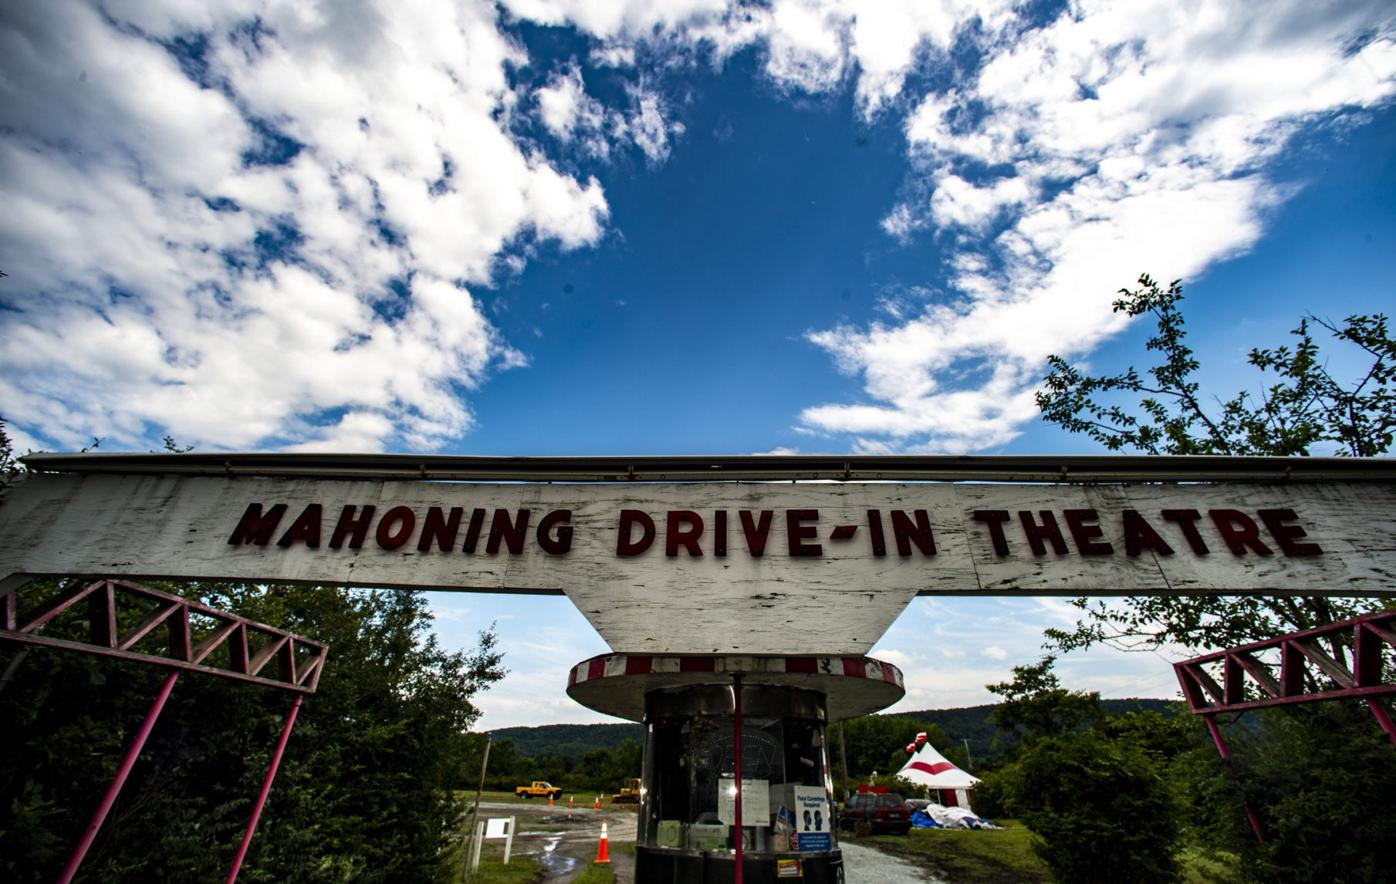 The Mahoning Drive-In